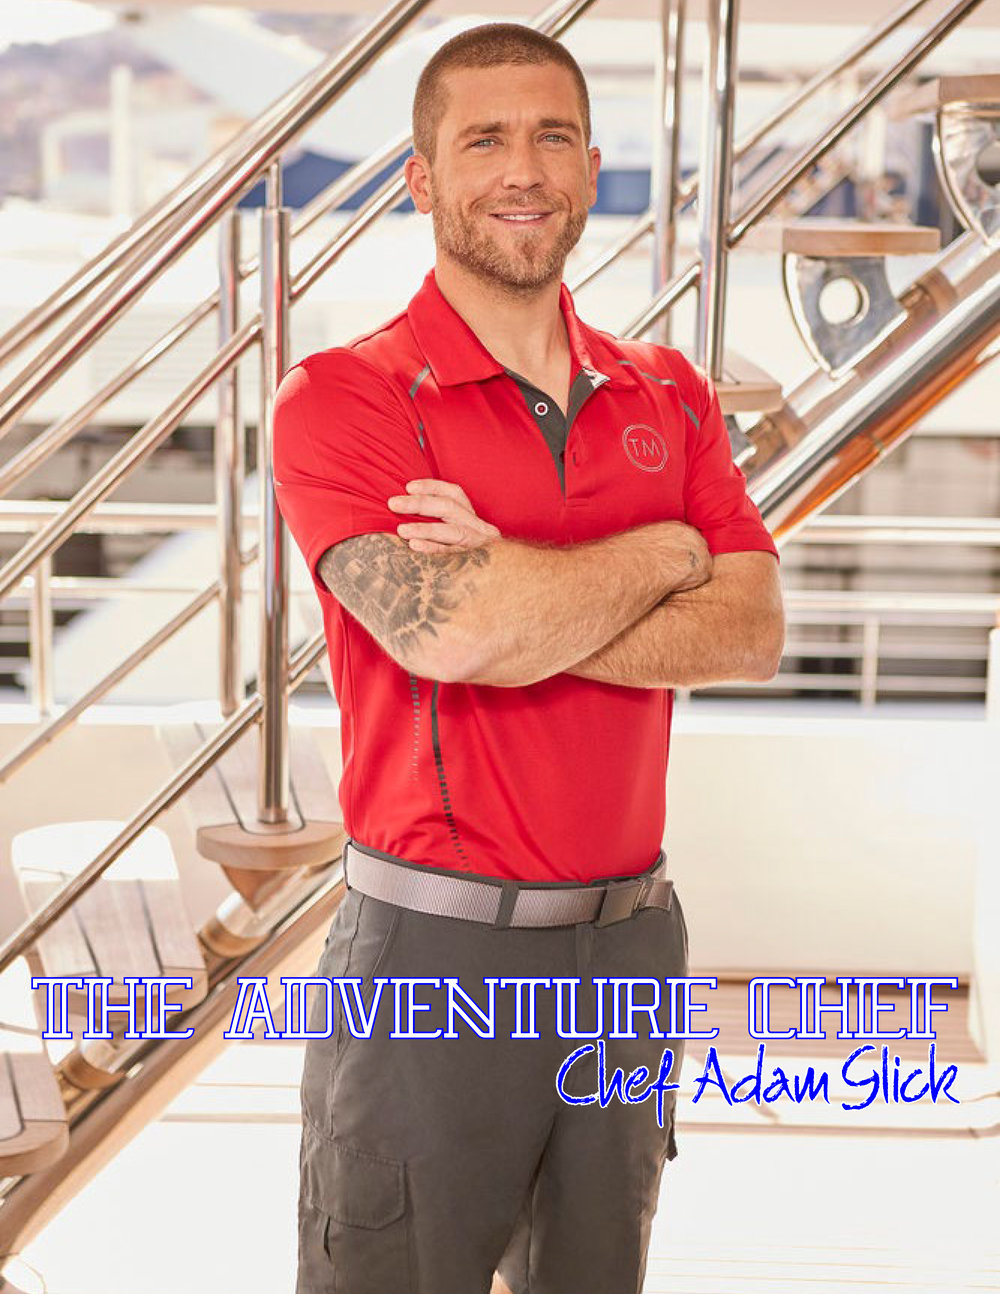 AM AUG THE ADVENTURE CHEF WITH CHEF ADAM SLICK-1.jpg